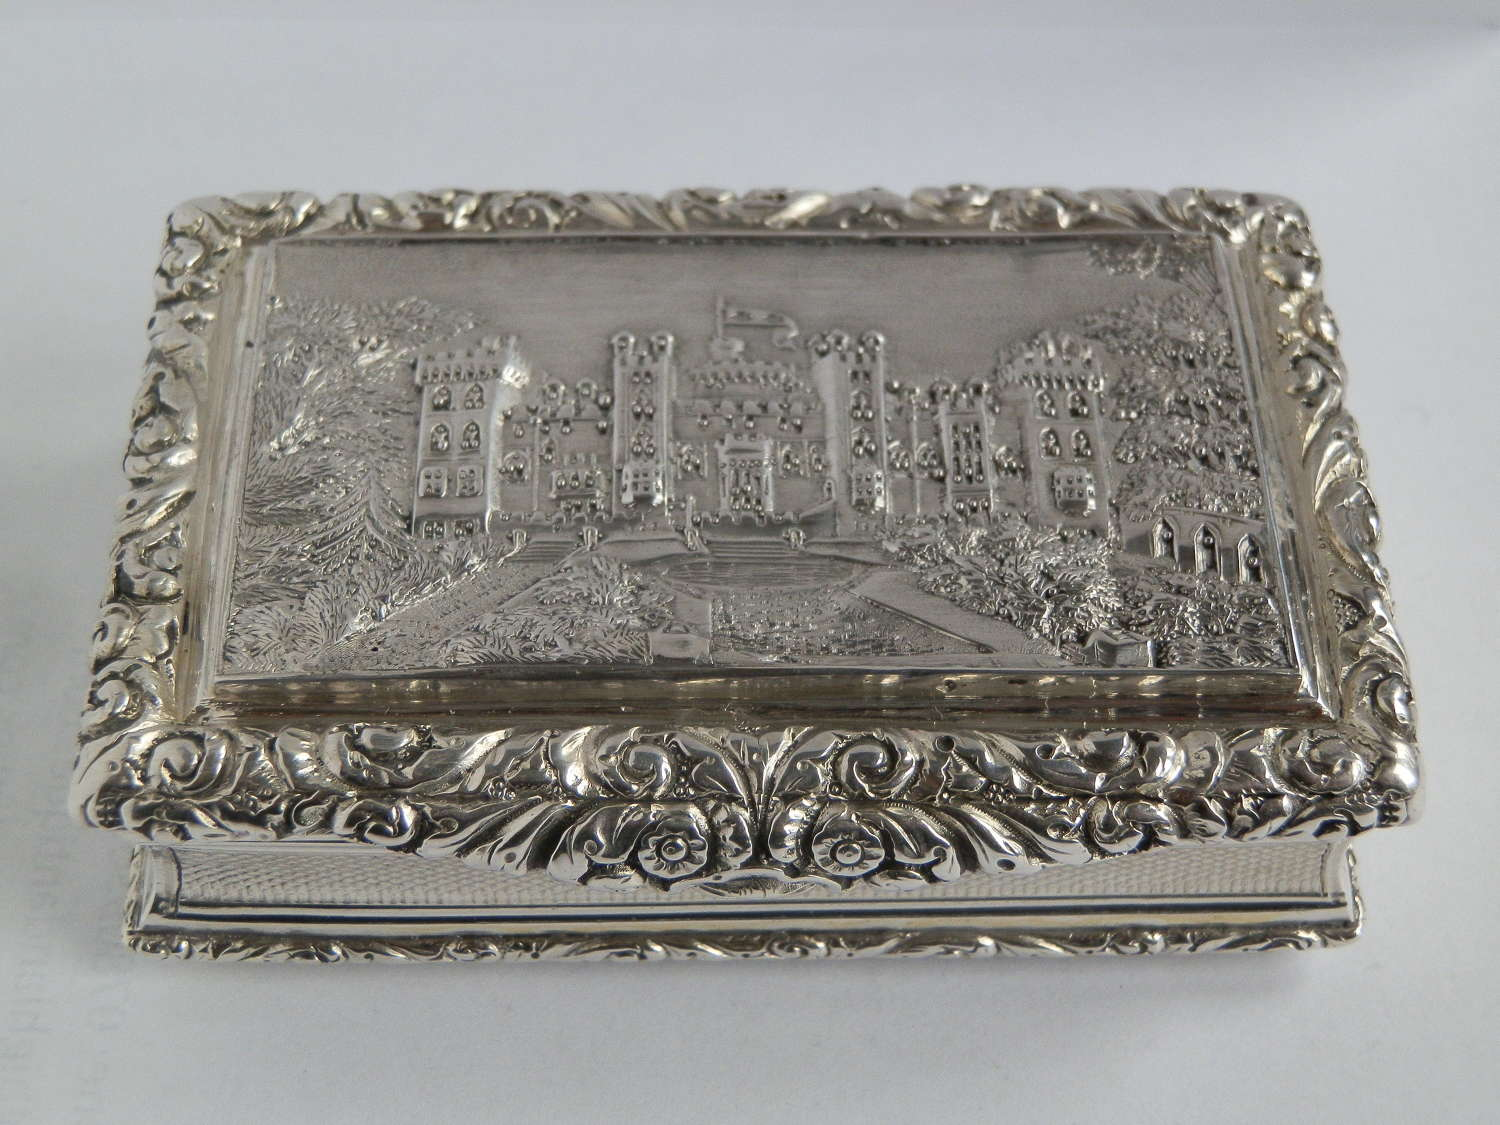 George IV Windsor Castle snuff box, Taylor & Perry, 1823